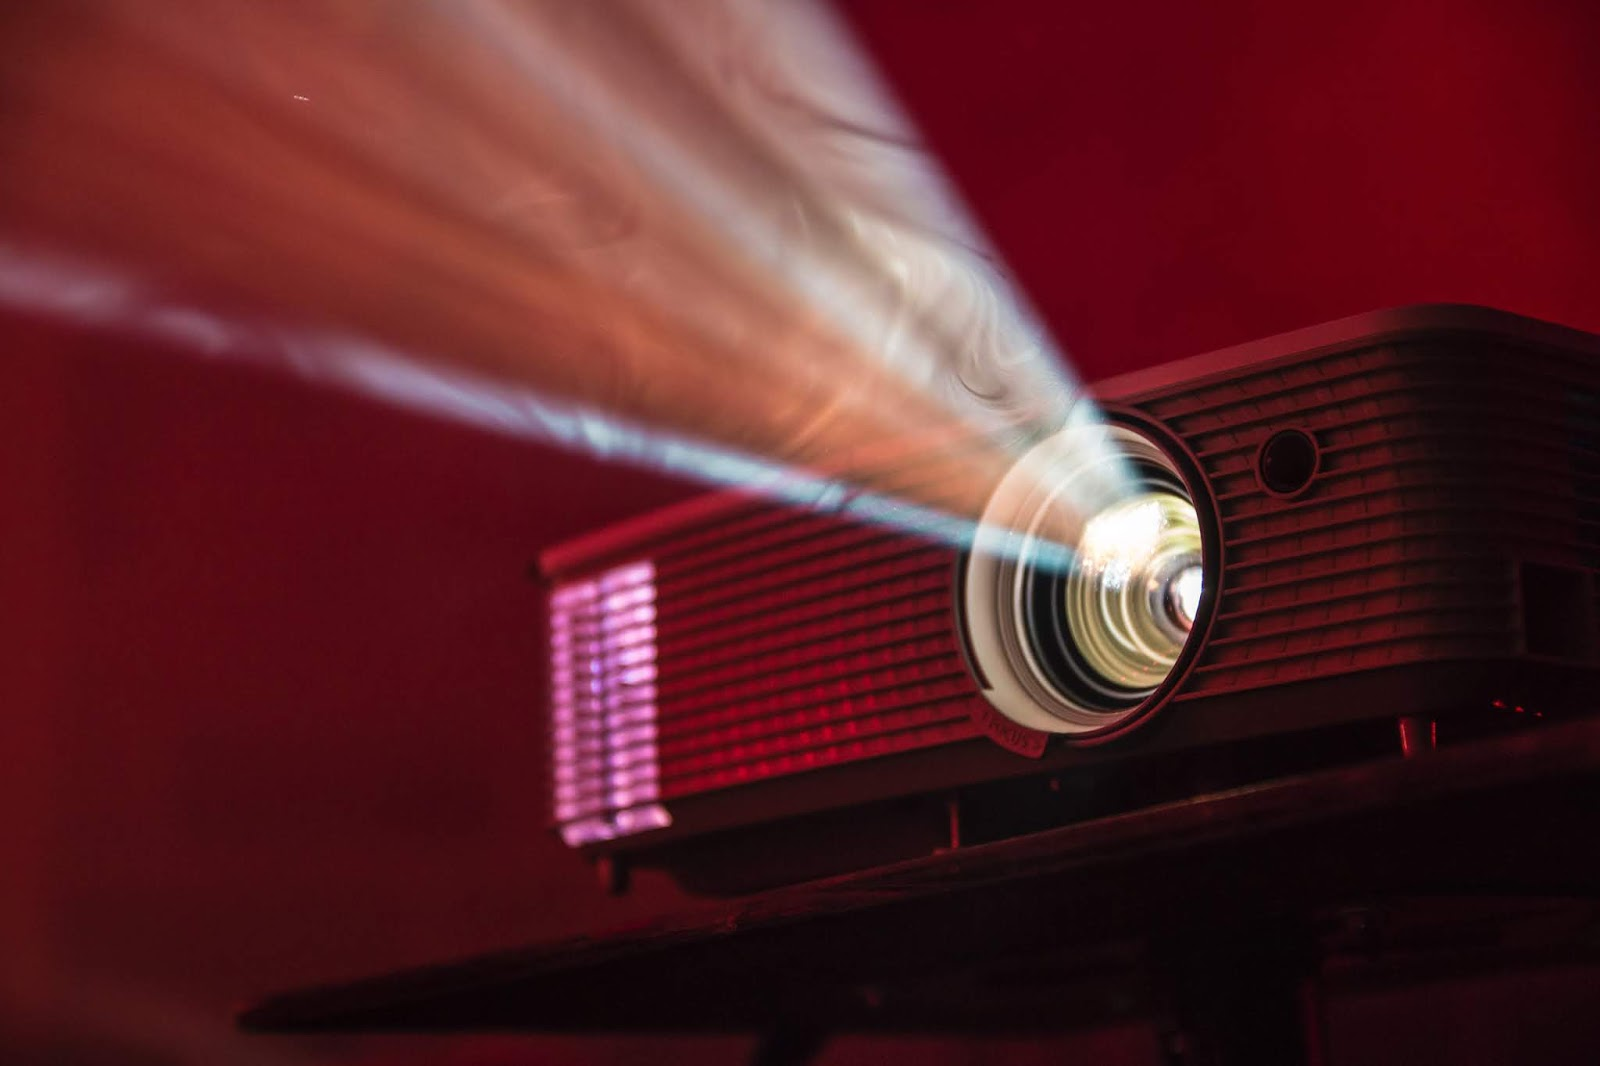 portable video projector shining light from its lense for blog post about movie operation finale